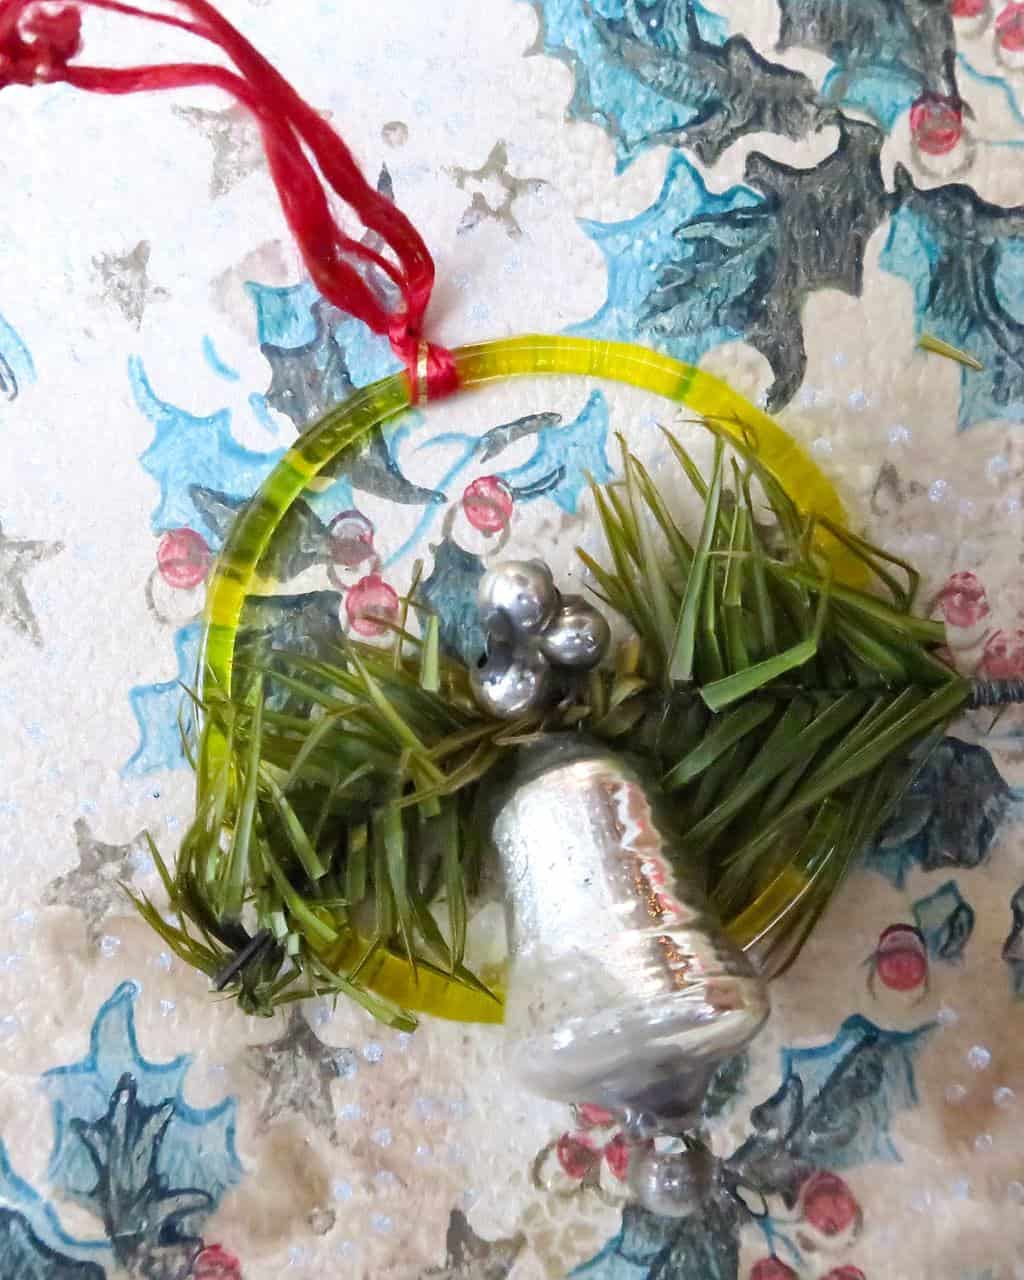 Granny's Vintage Christmas Decorations include this little glass bell